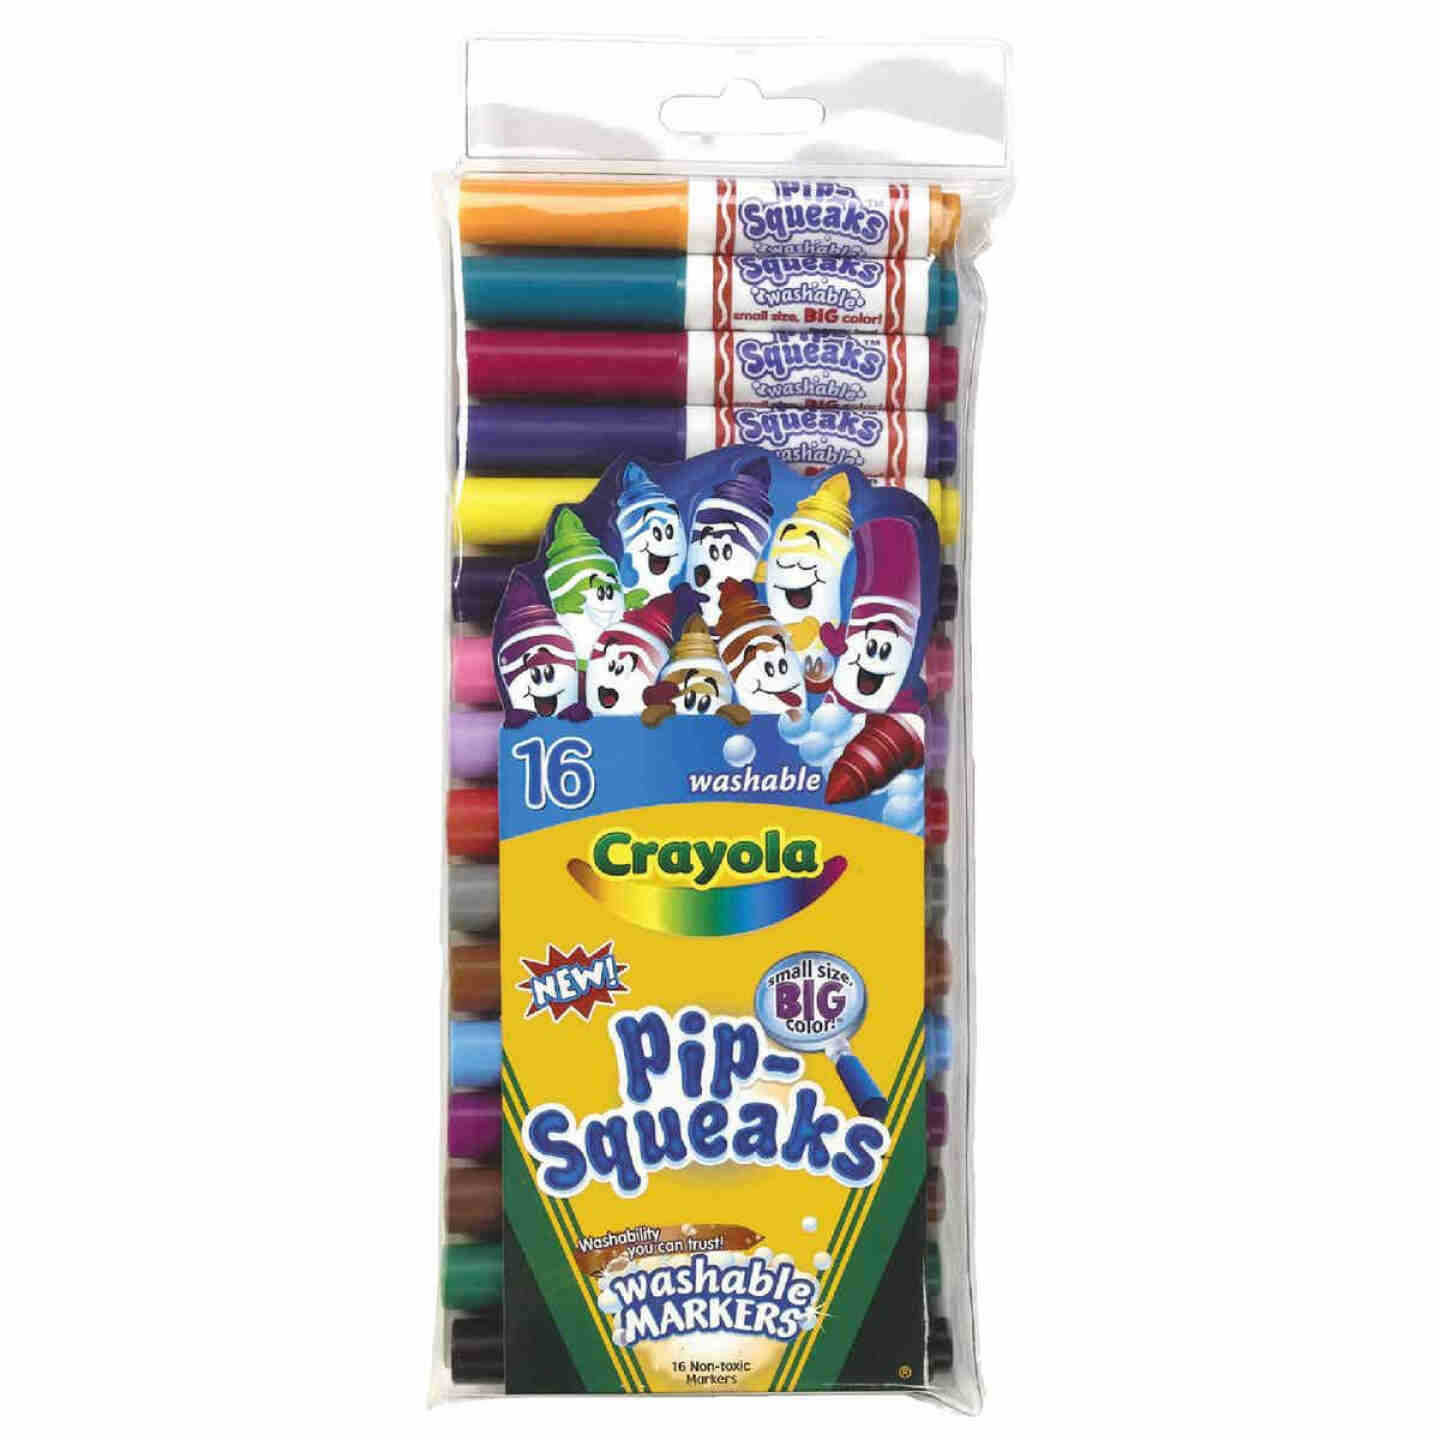 Crayola Pip-Squeaks Assorted Color Conical Nib Washable Marker (16-Pack) Image 1